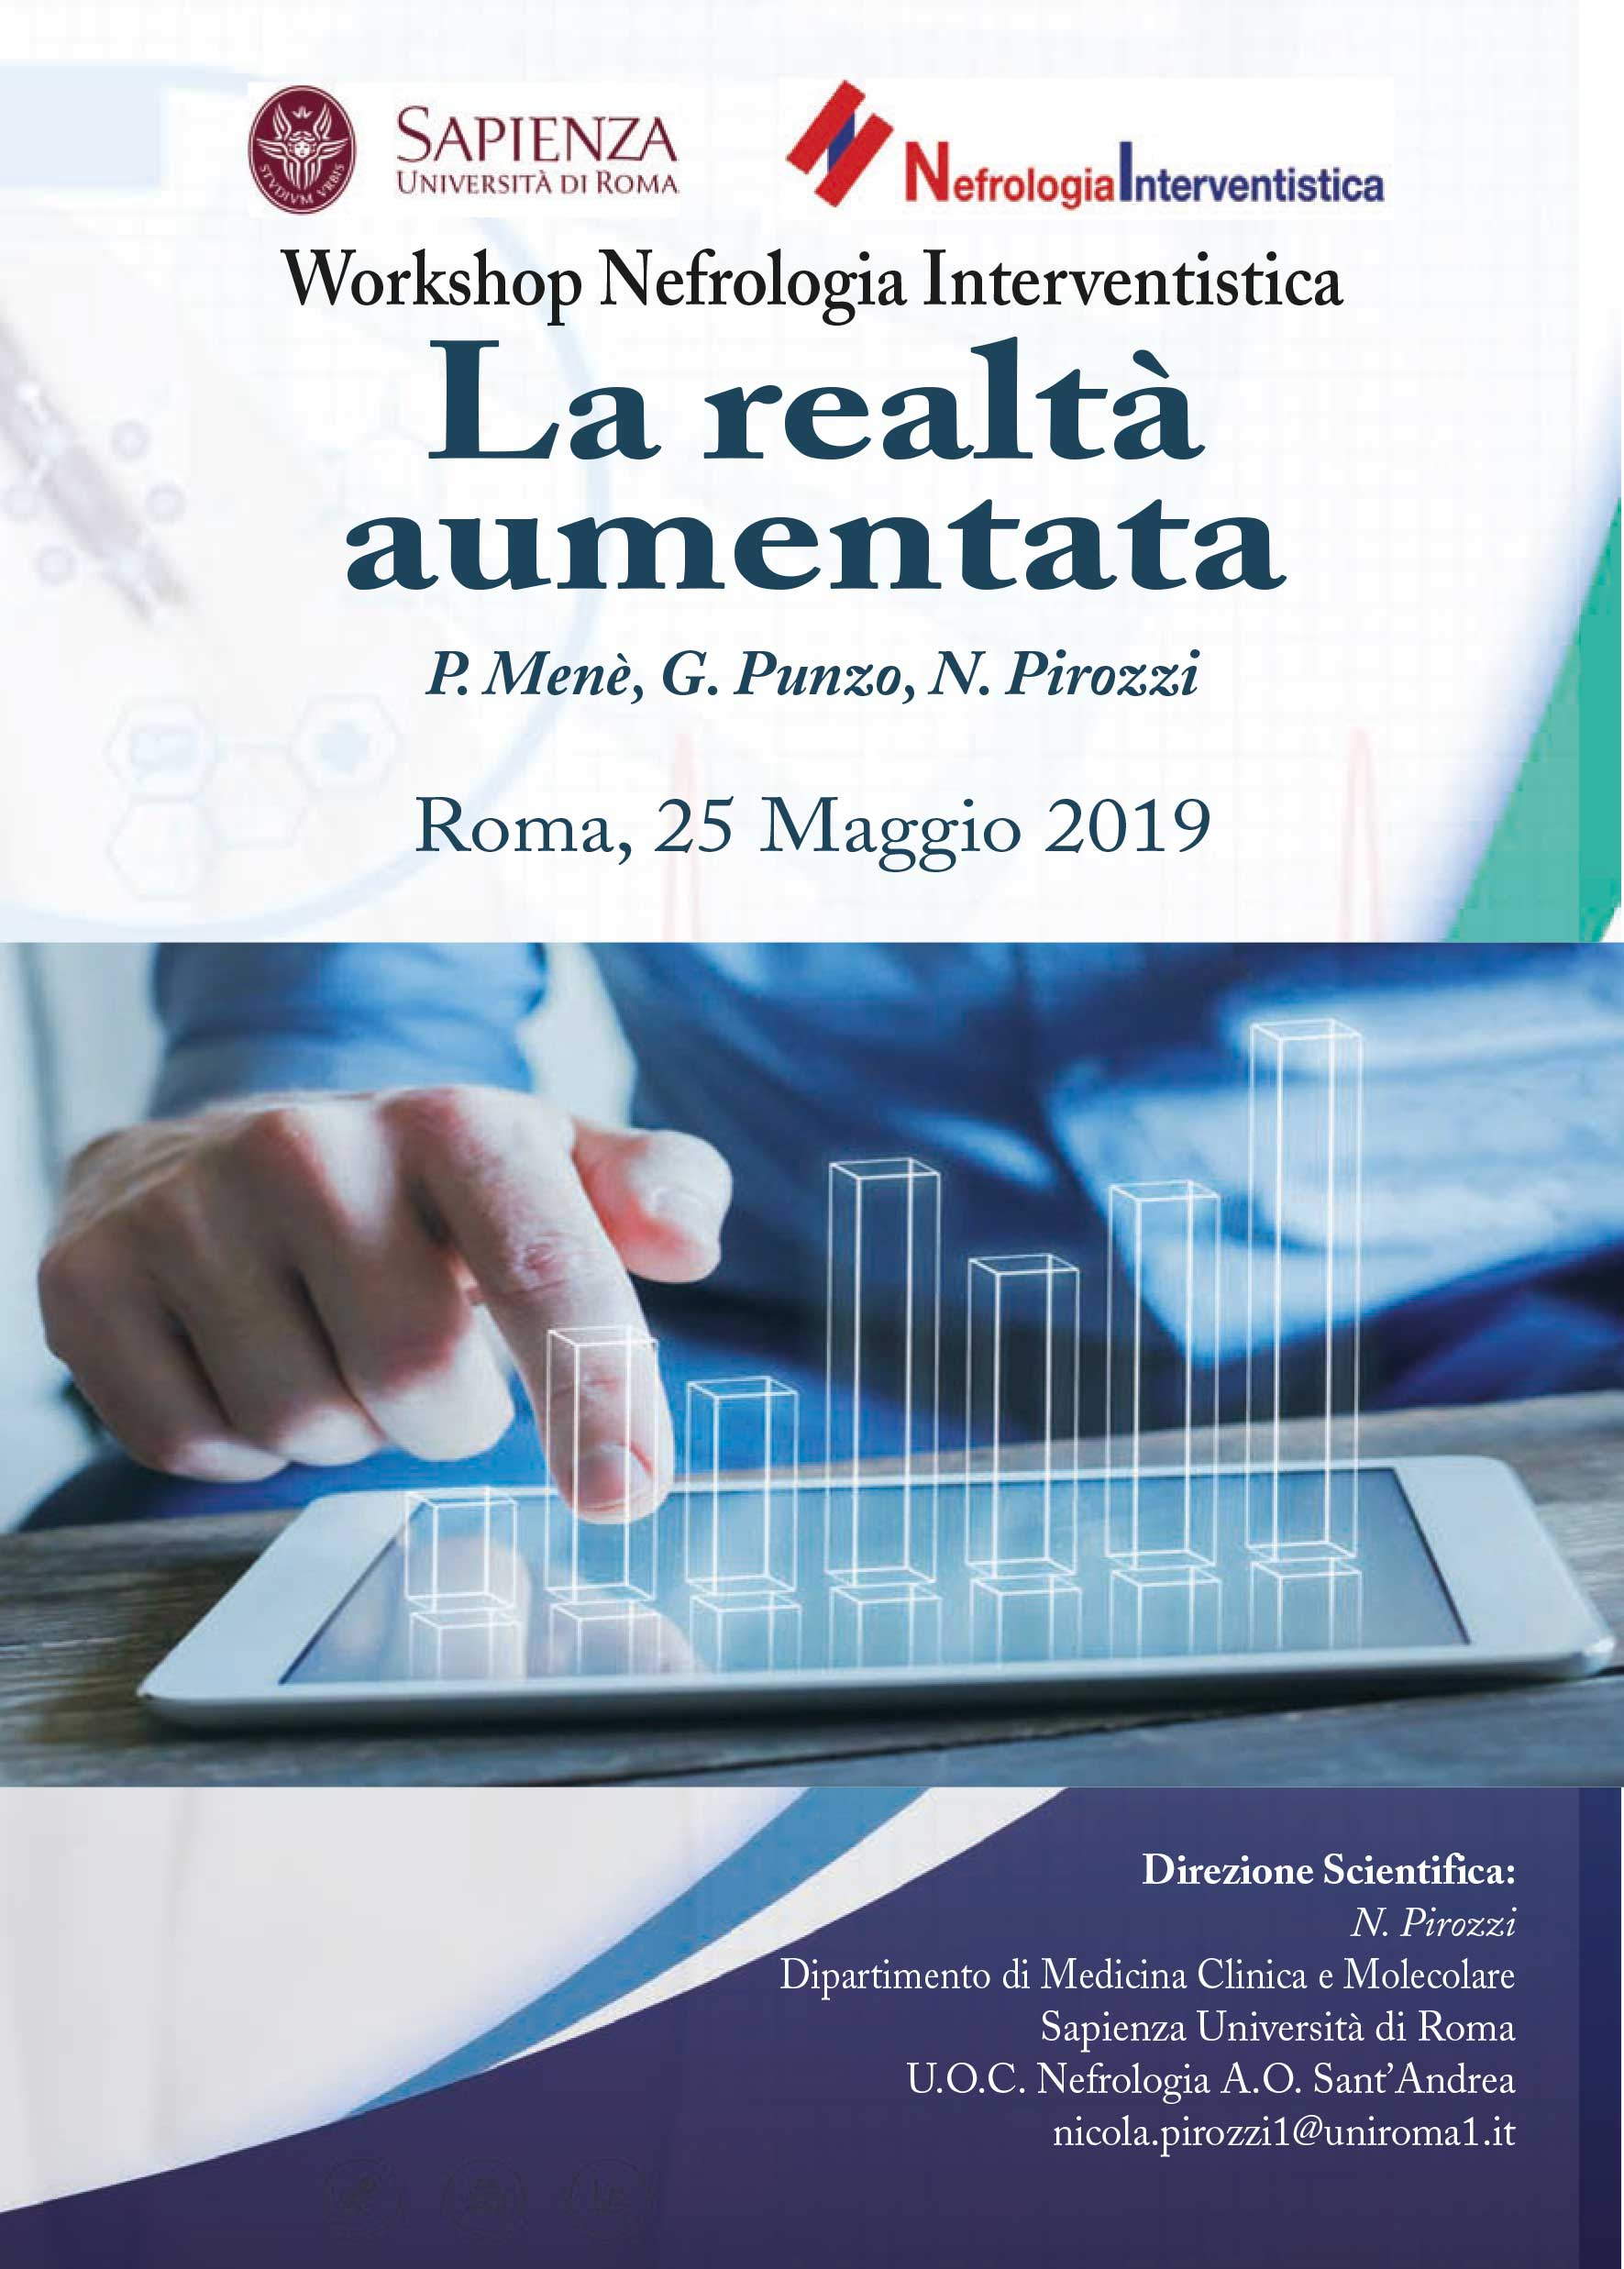 Workshop Nefrologia Interventistica - Roma, 25 Maggio 2019